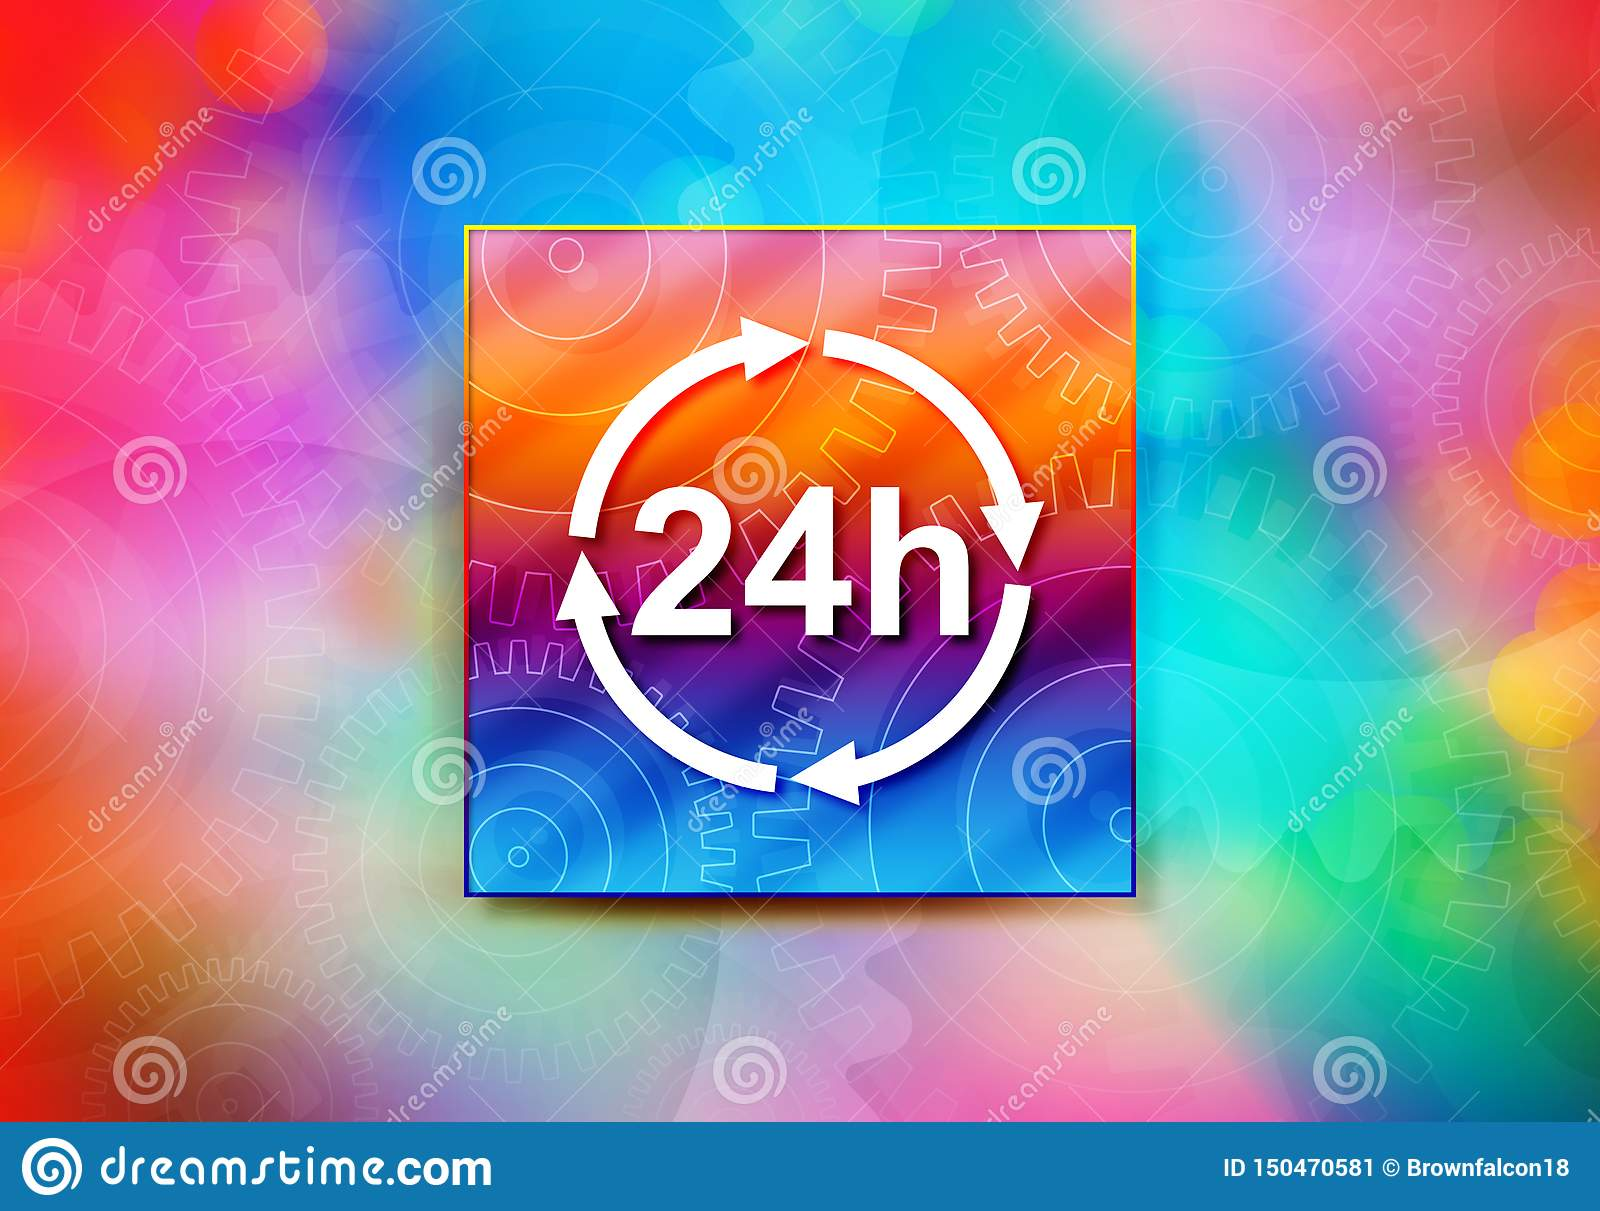 24 hours update icon abstract colorful background bokeh design illustration